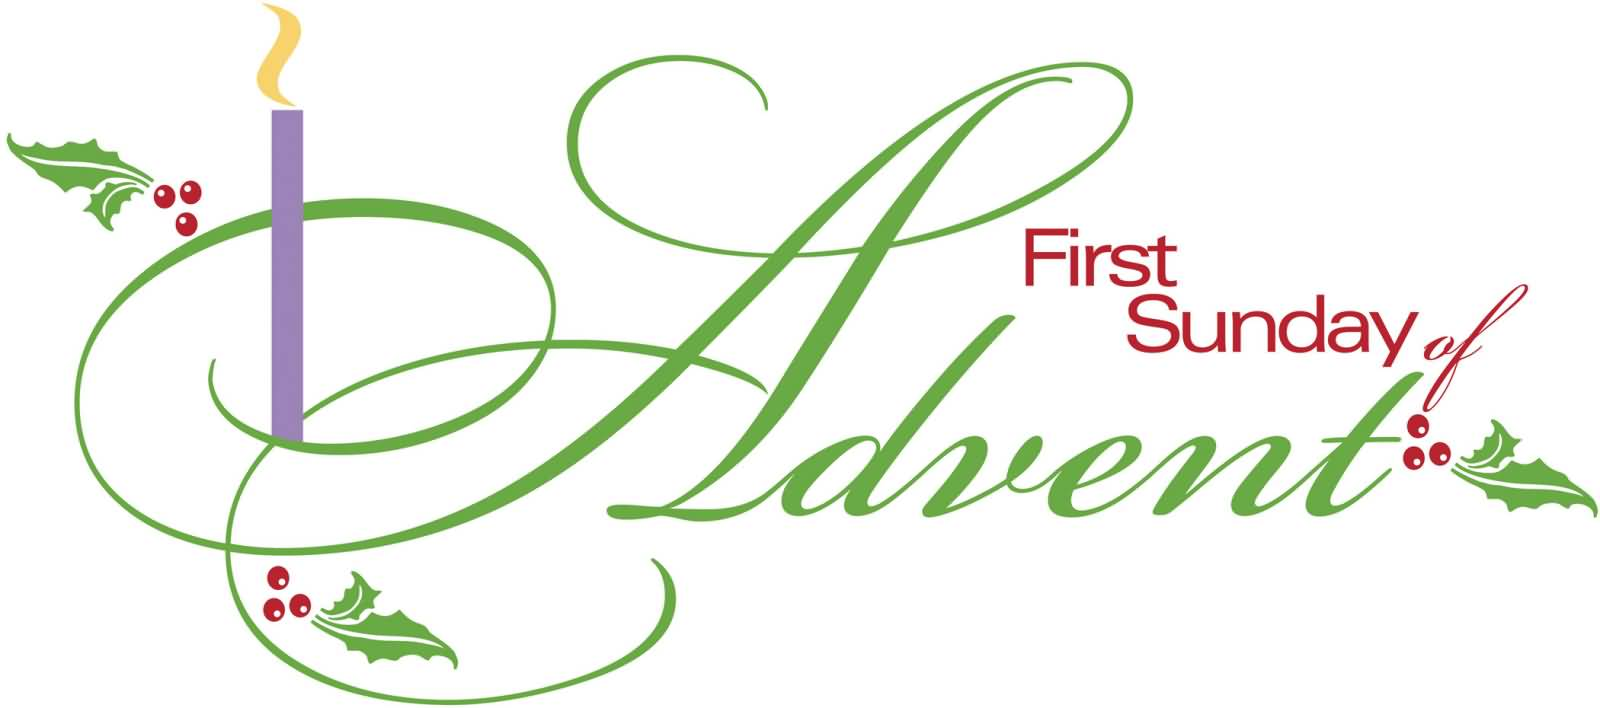 First sunday of advent clipart fb covers